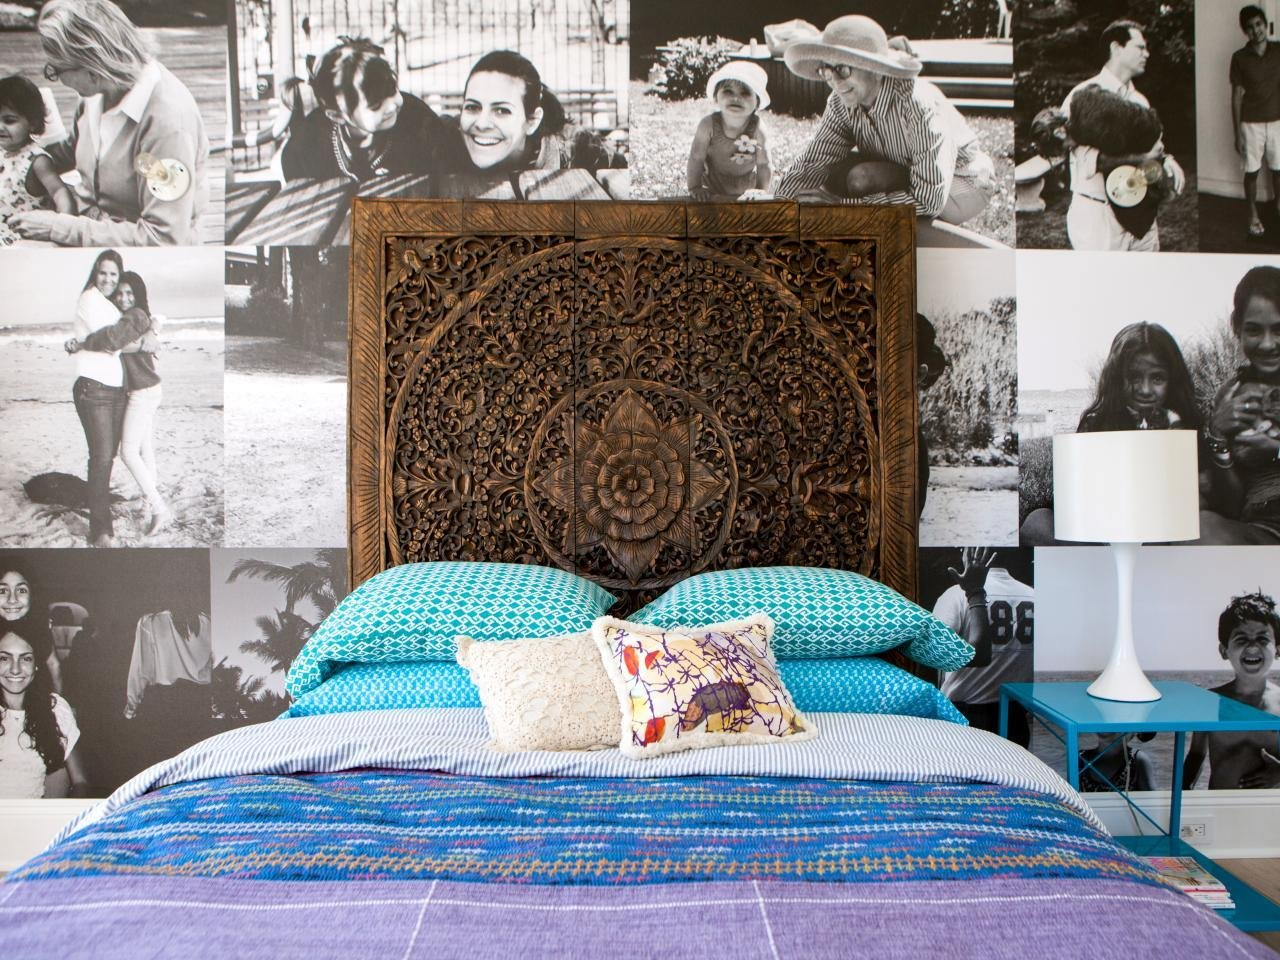 Best Learn How To Create And Hang A Custom Wall Mural Hgtv S Decorating Design Blog Hgtv With Pictures